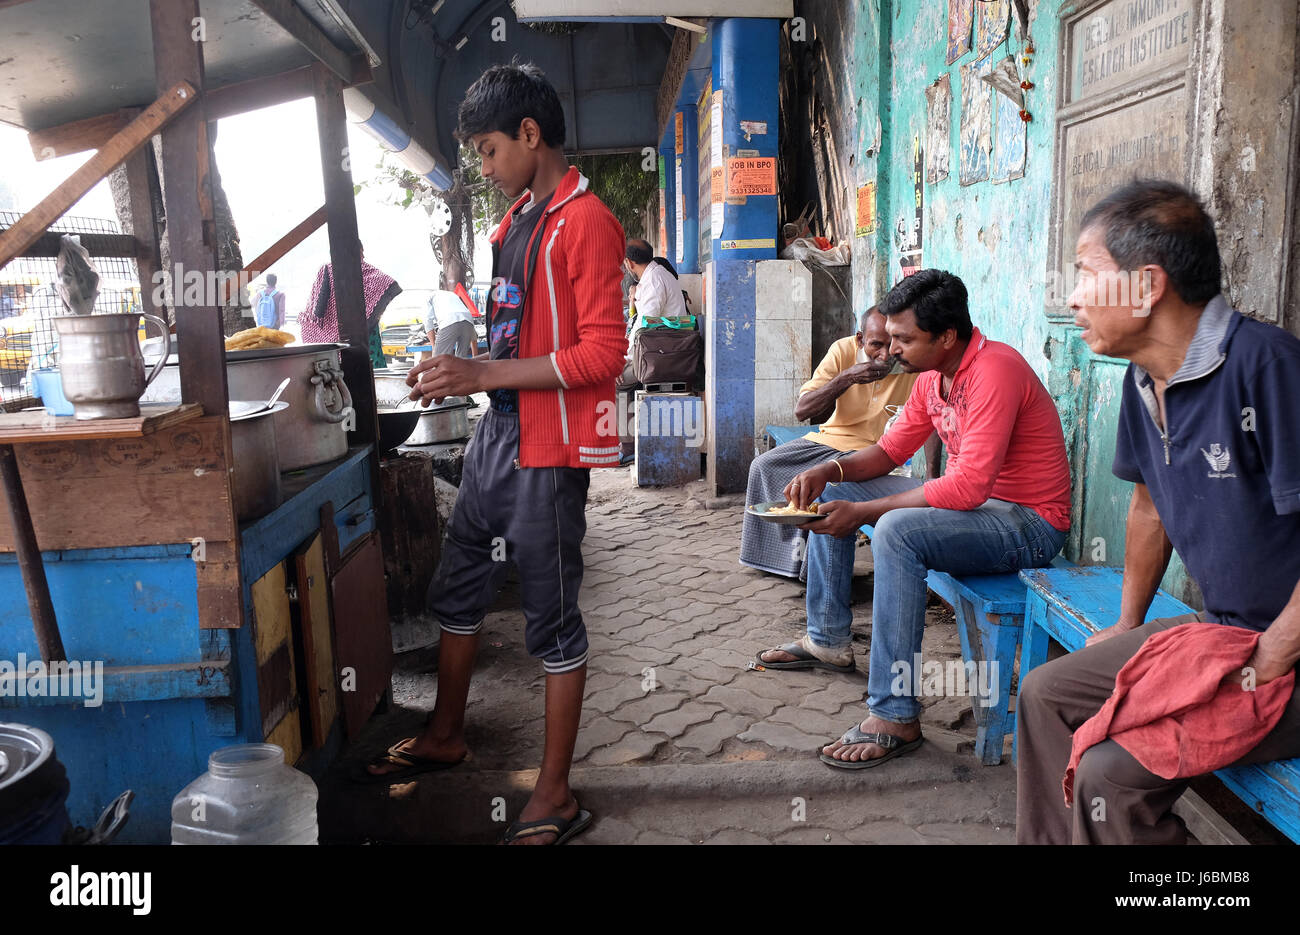 Street trader sells fast food for hungry people on the busy street in Kolkata, India on February 08, 2016. - Stock Image